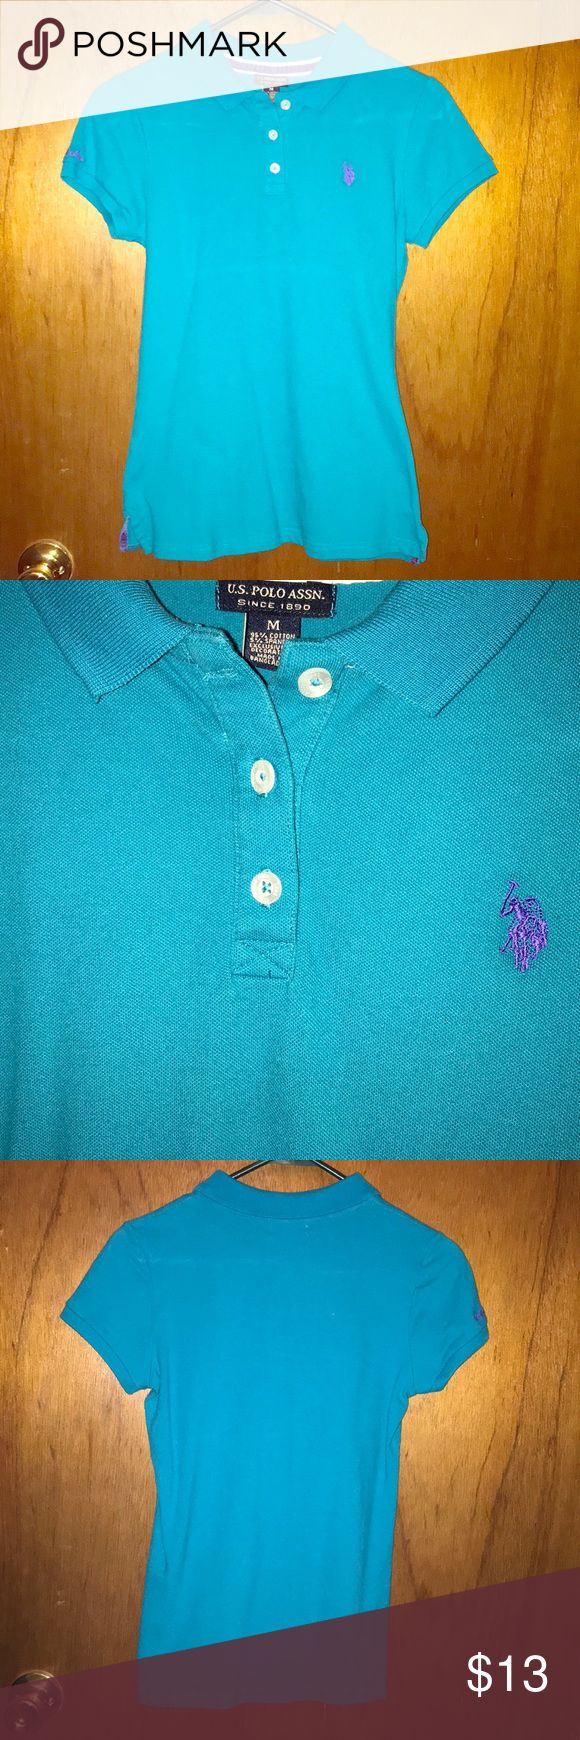 Teal/blue polo collared shirt The polo is a pretty blueish green color. It has a purple logo on the front and one side sleeve. Soft fabric, only worn a few times. ❤️Make me an offer❤️ U.S. Polo Assn. Tops Blouses